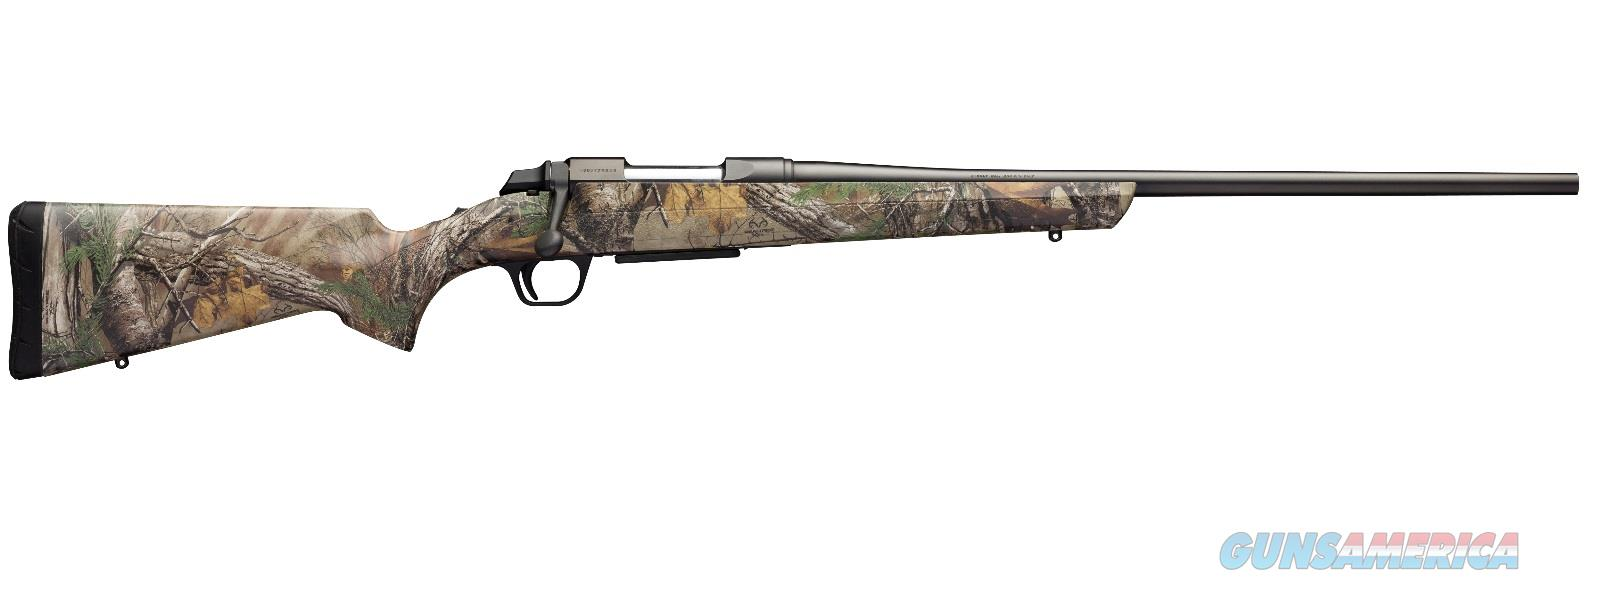 Browning A-BOLT III REALTREE 30-06 22 REALTREE XTRA COMPOSITE STOCK  Guns > Rifles > B Misc Rifles